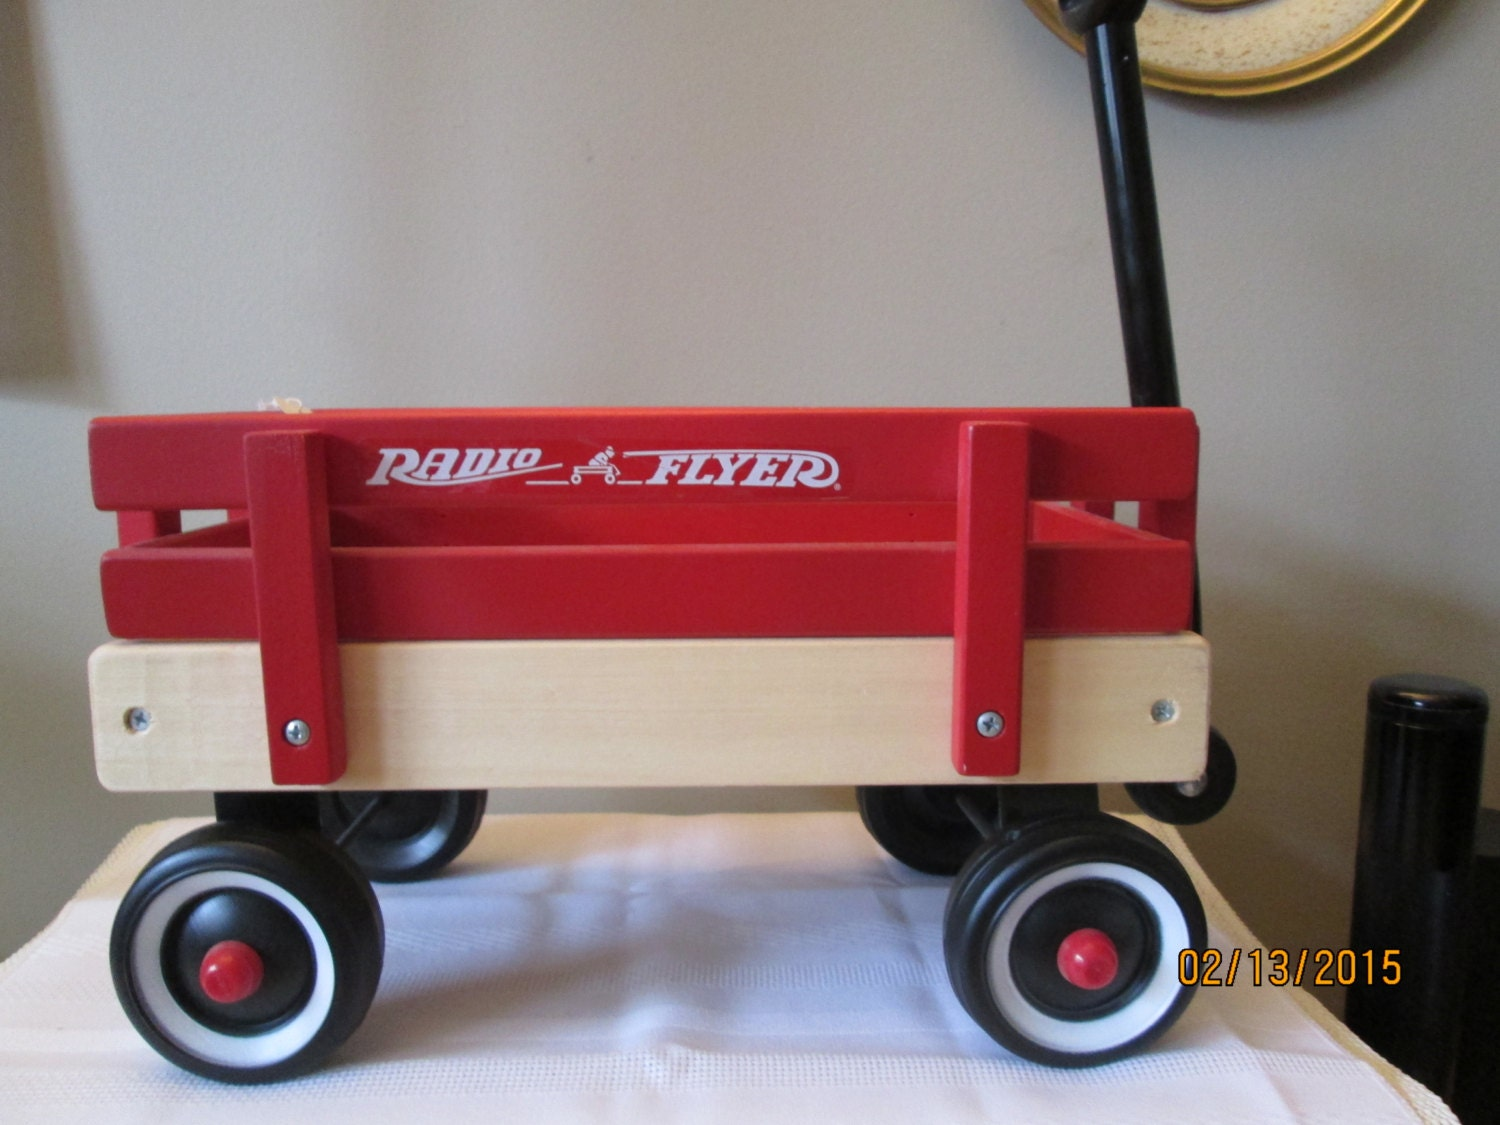 Vintage radio flyer model number 6 collectors wagon by chulapoe